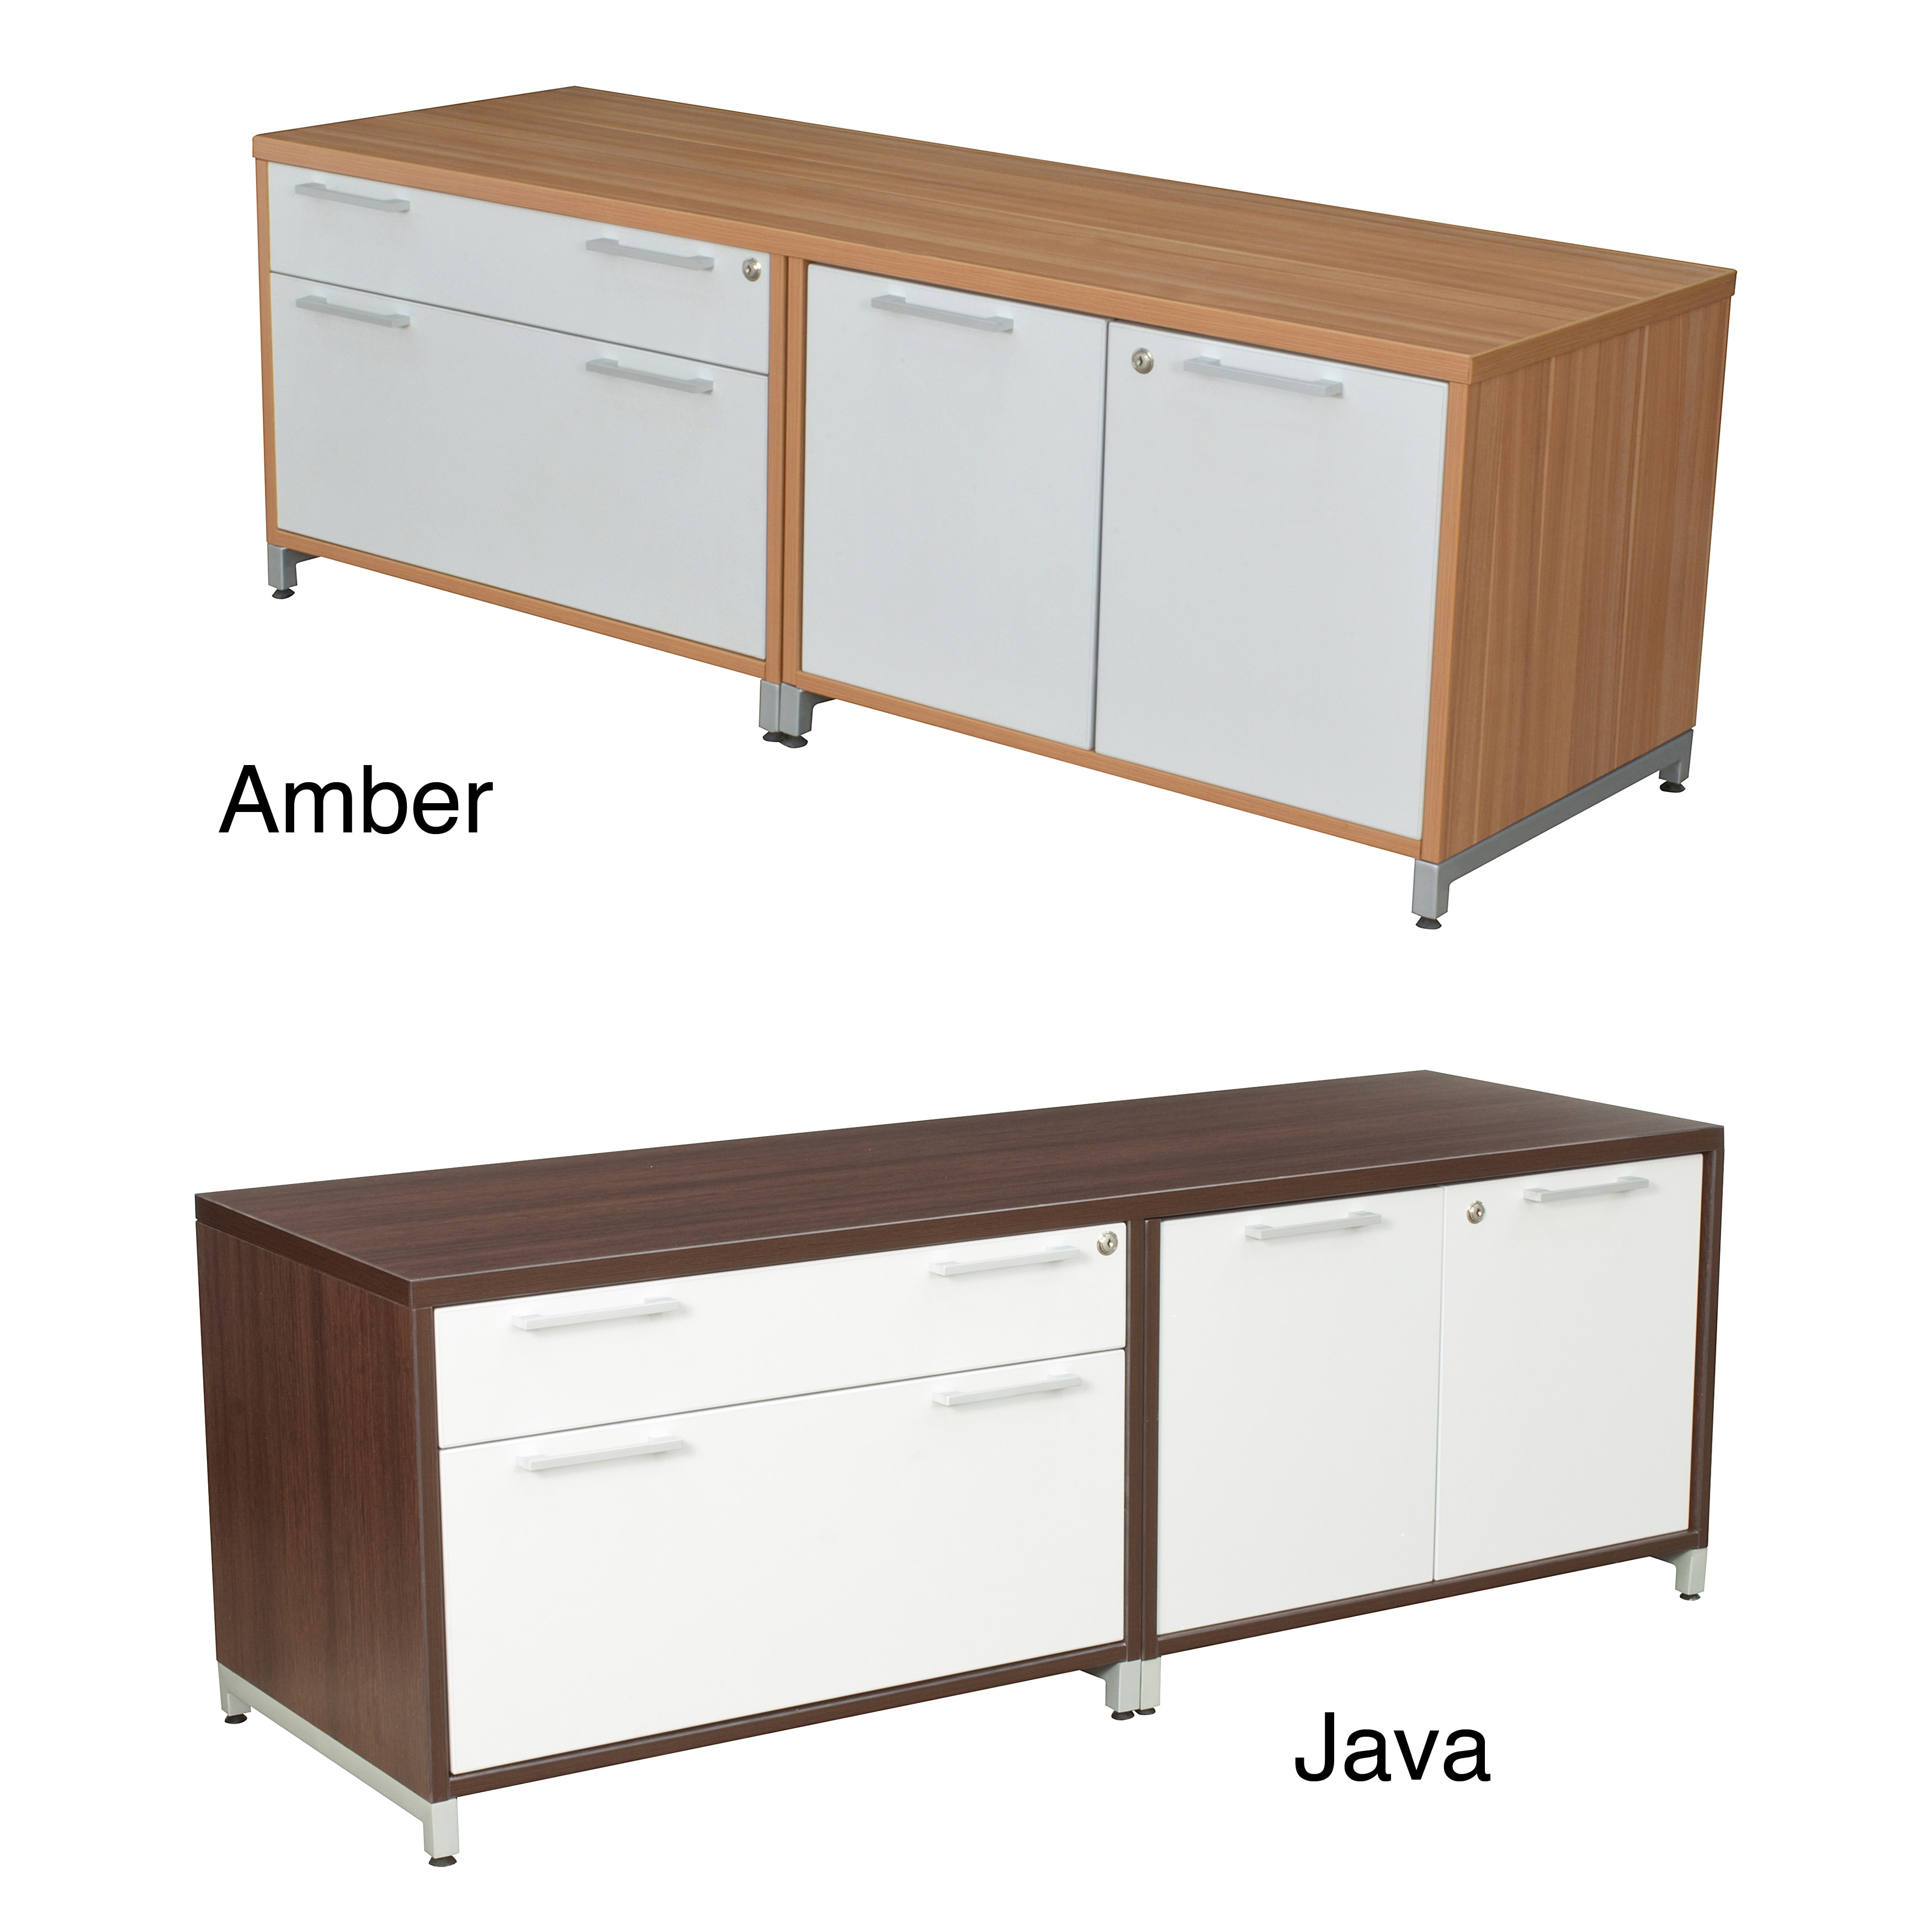 Regency Seating OneDesk 60-inch Lateral/ Storage Cabinet Low Credenza